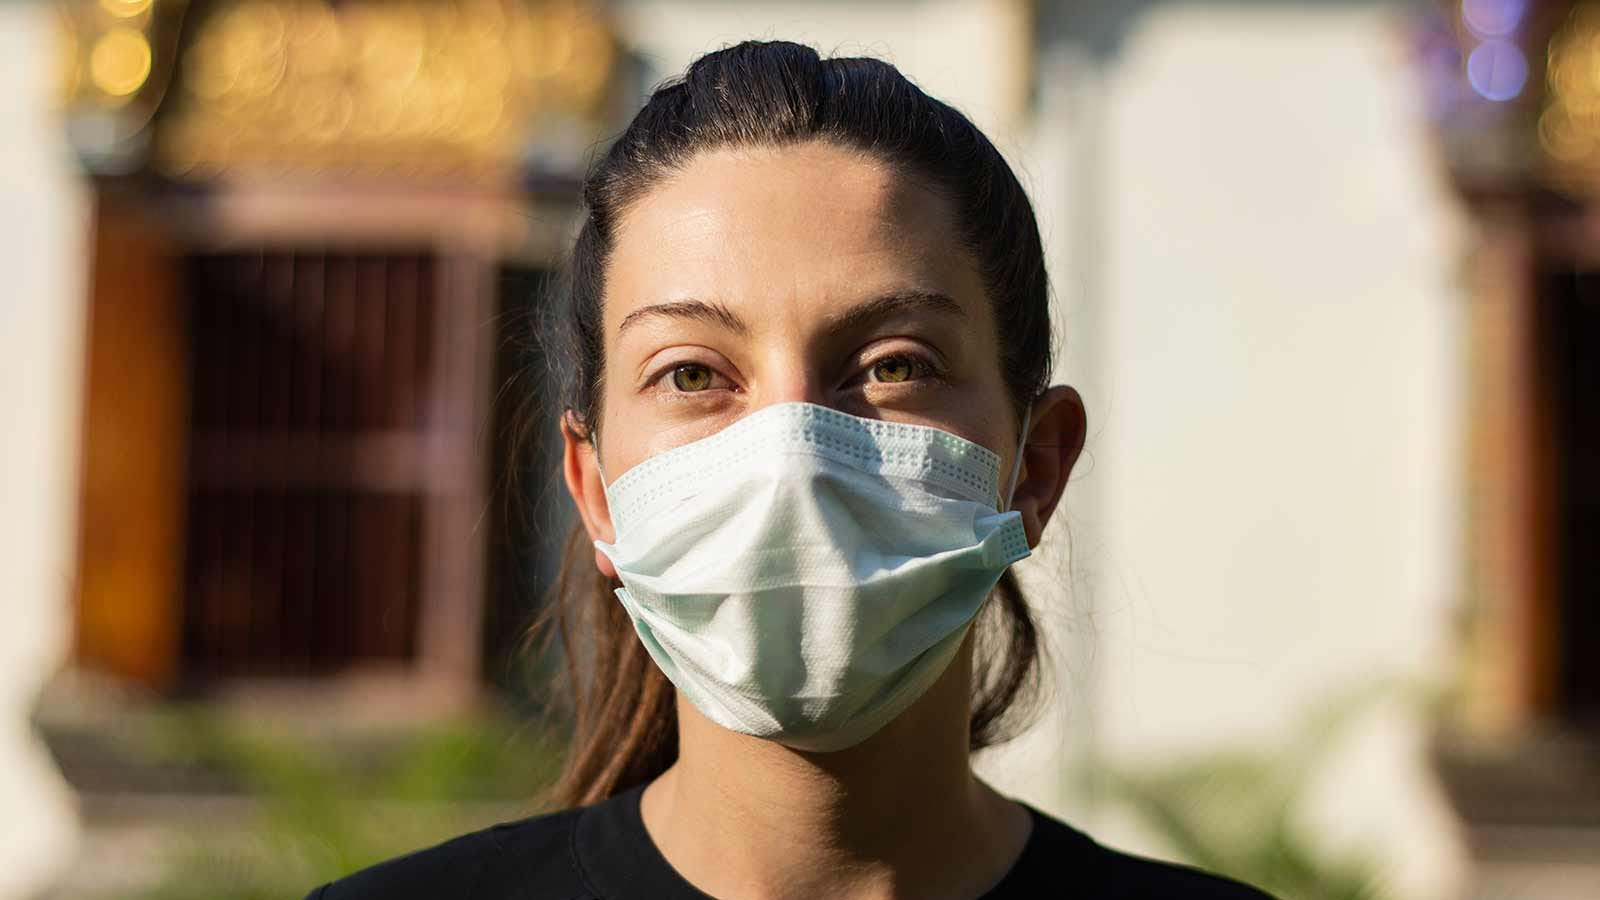 A woman wearing a disposable face mask.